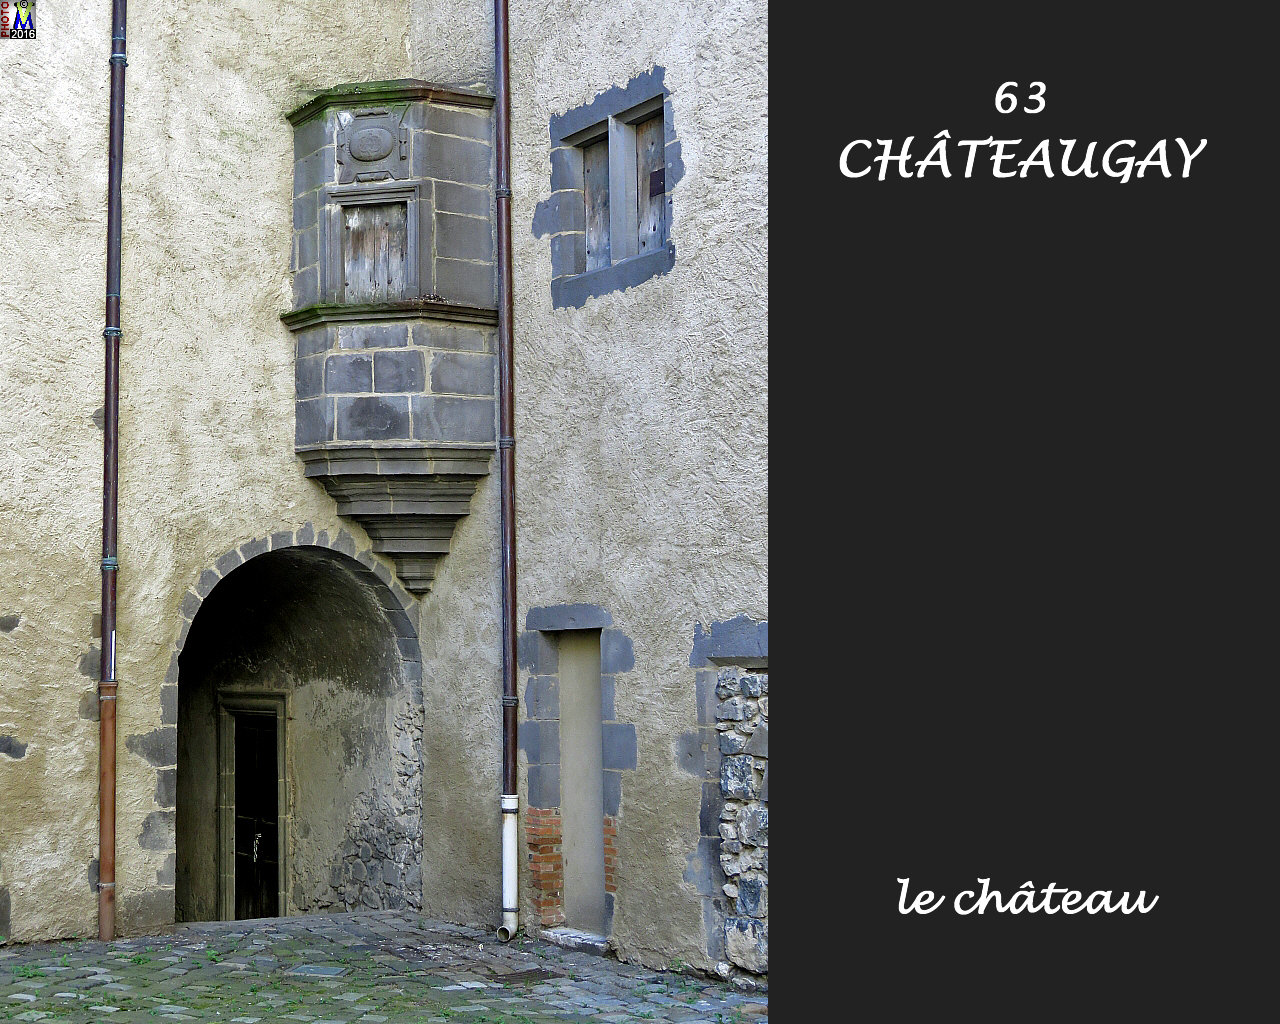 63CHATEAUGAY_chateau_116.jpg